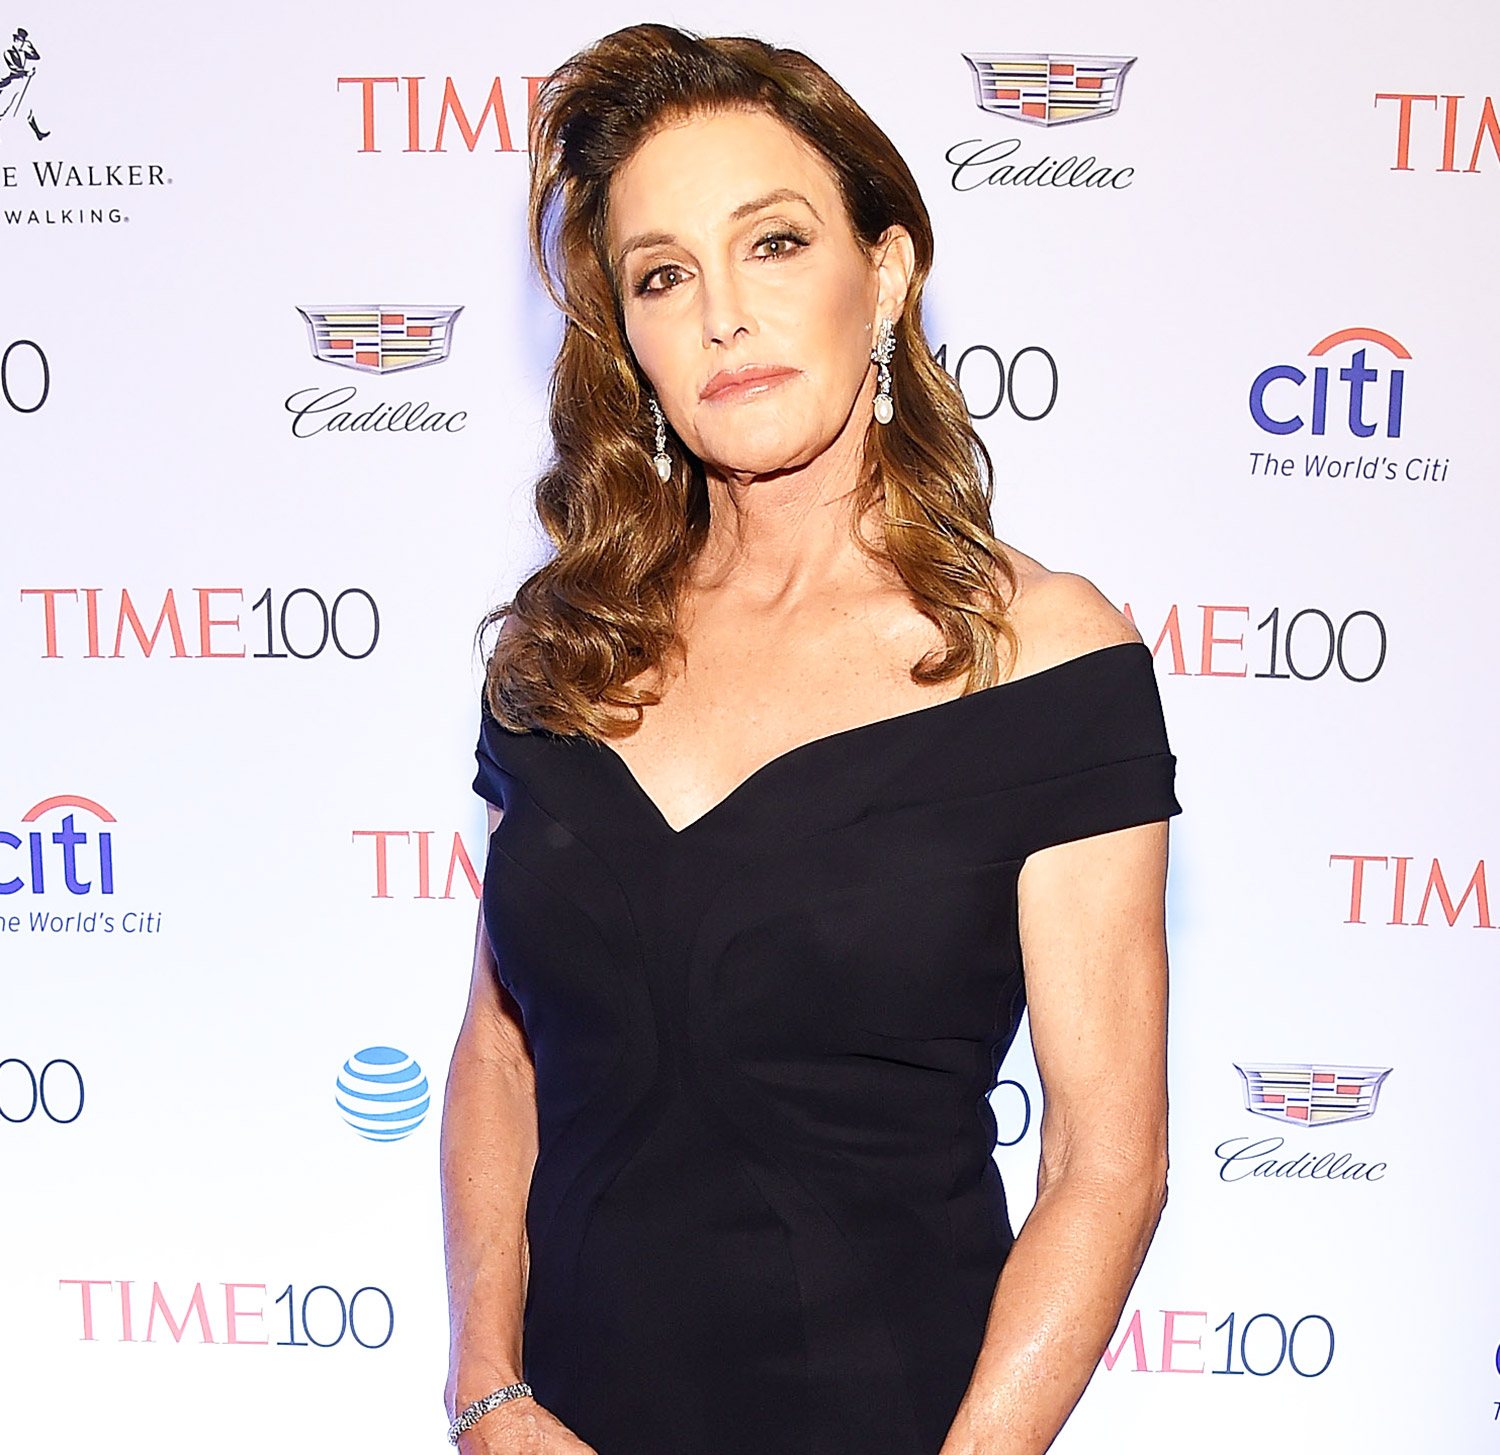 picture Caitlyn Jenner Covers Sports Illustrated, Marking 40 Years Since She Won Olympic Gold